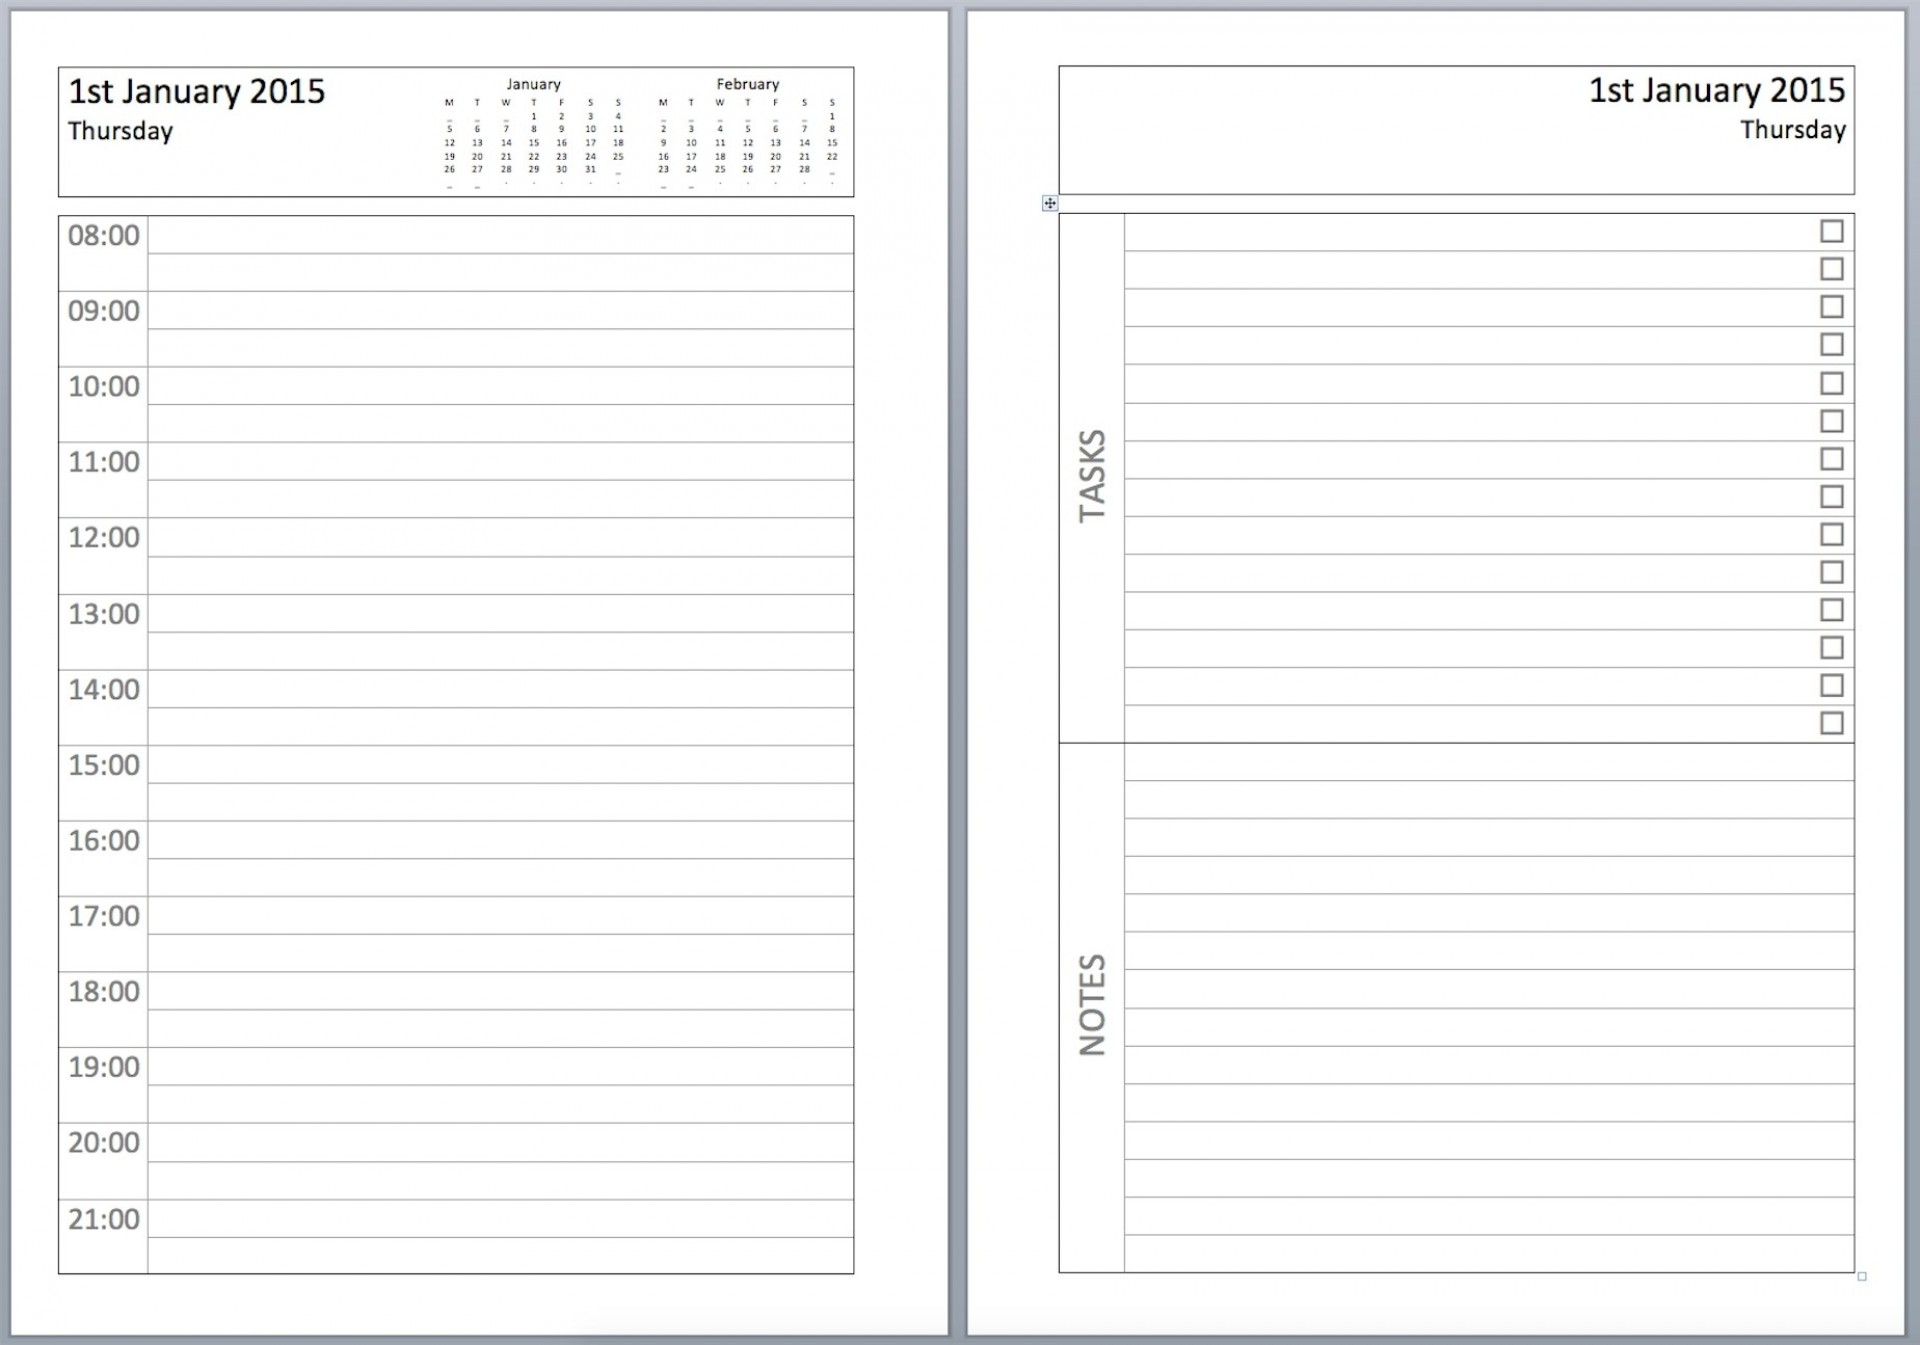 025 Template Ideas Daily Planner Pinterest1 Imposing with Daily Planner With Time Slots Template